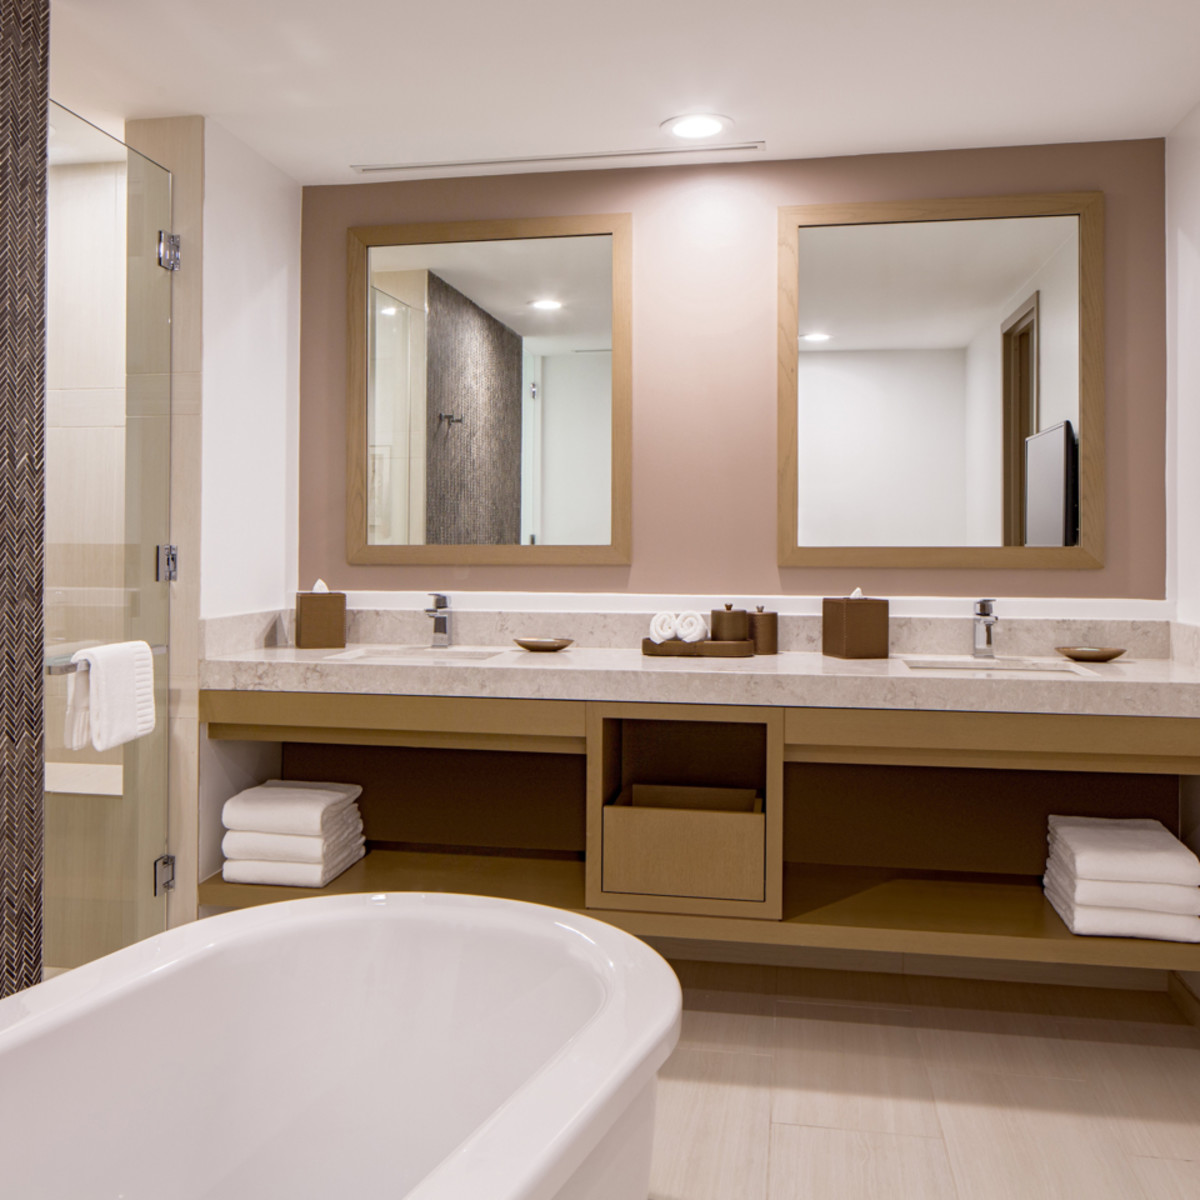 Hyatt Regency two story suites master bath